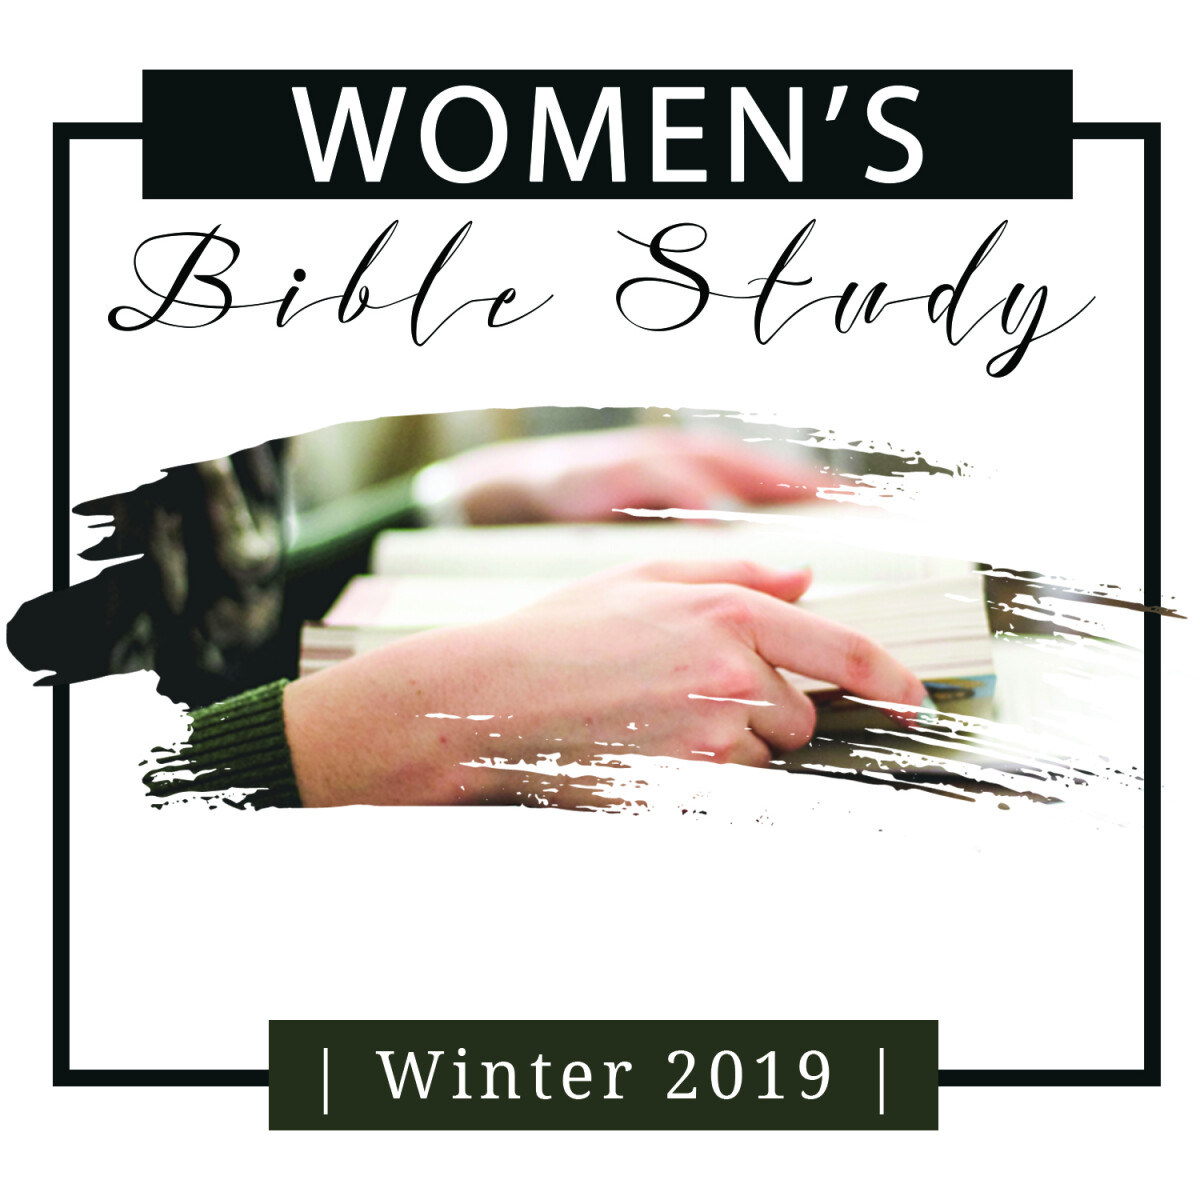 Women's Tuesday AM Bible Studies,